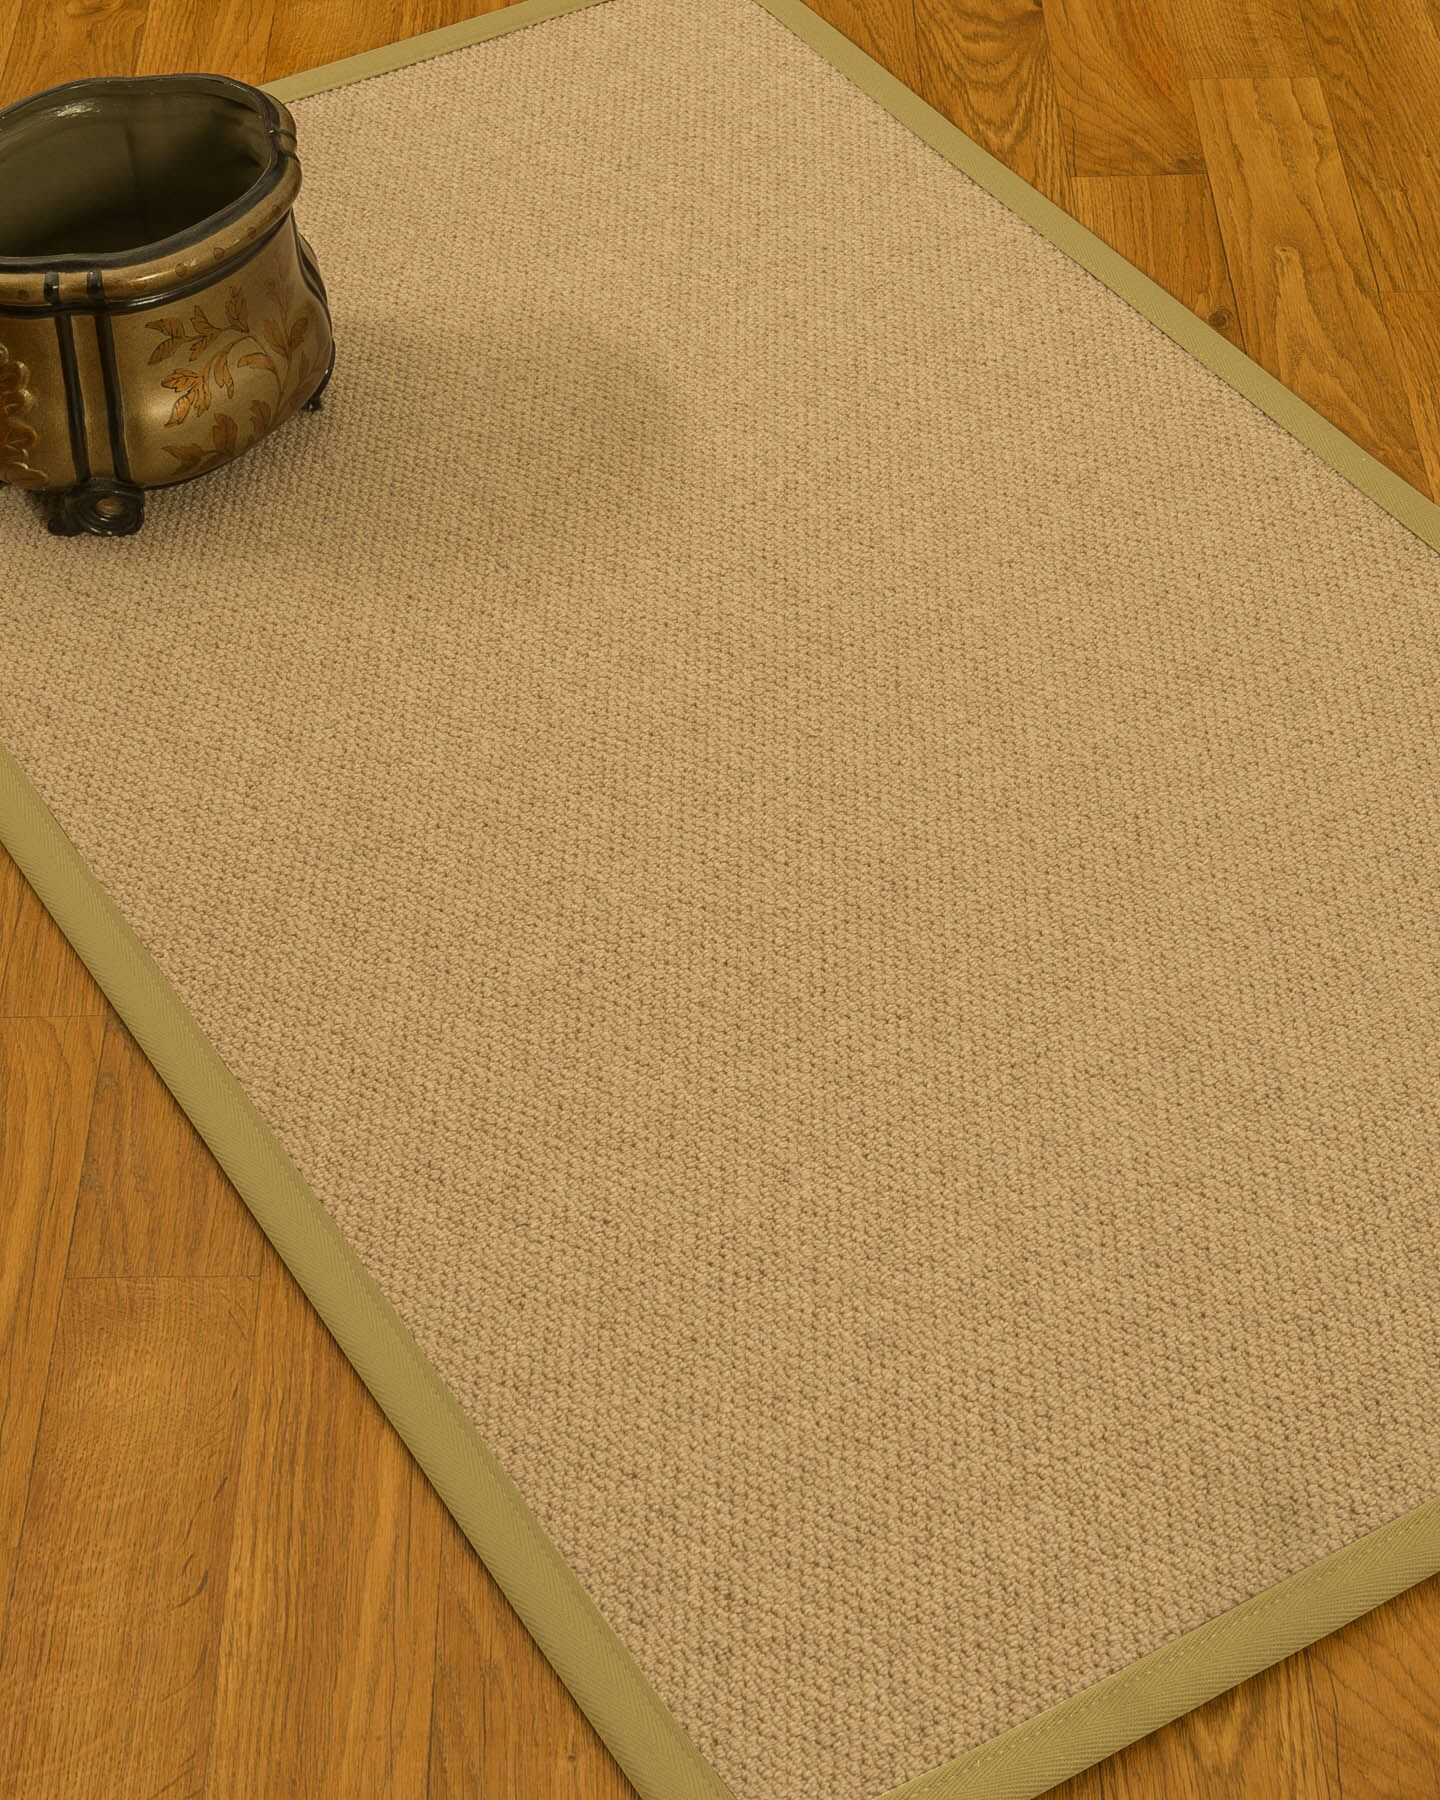 Chavira Border Hand-Woven Wool Beige/Khaki Area Rug Rug Pad Included: No, Rug Size: Rectangle 3' x 5'